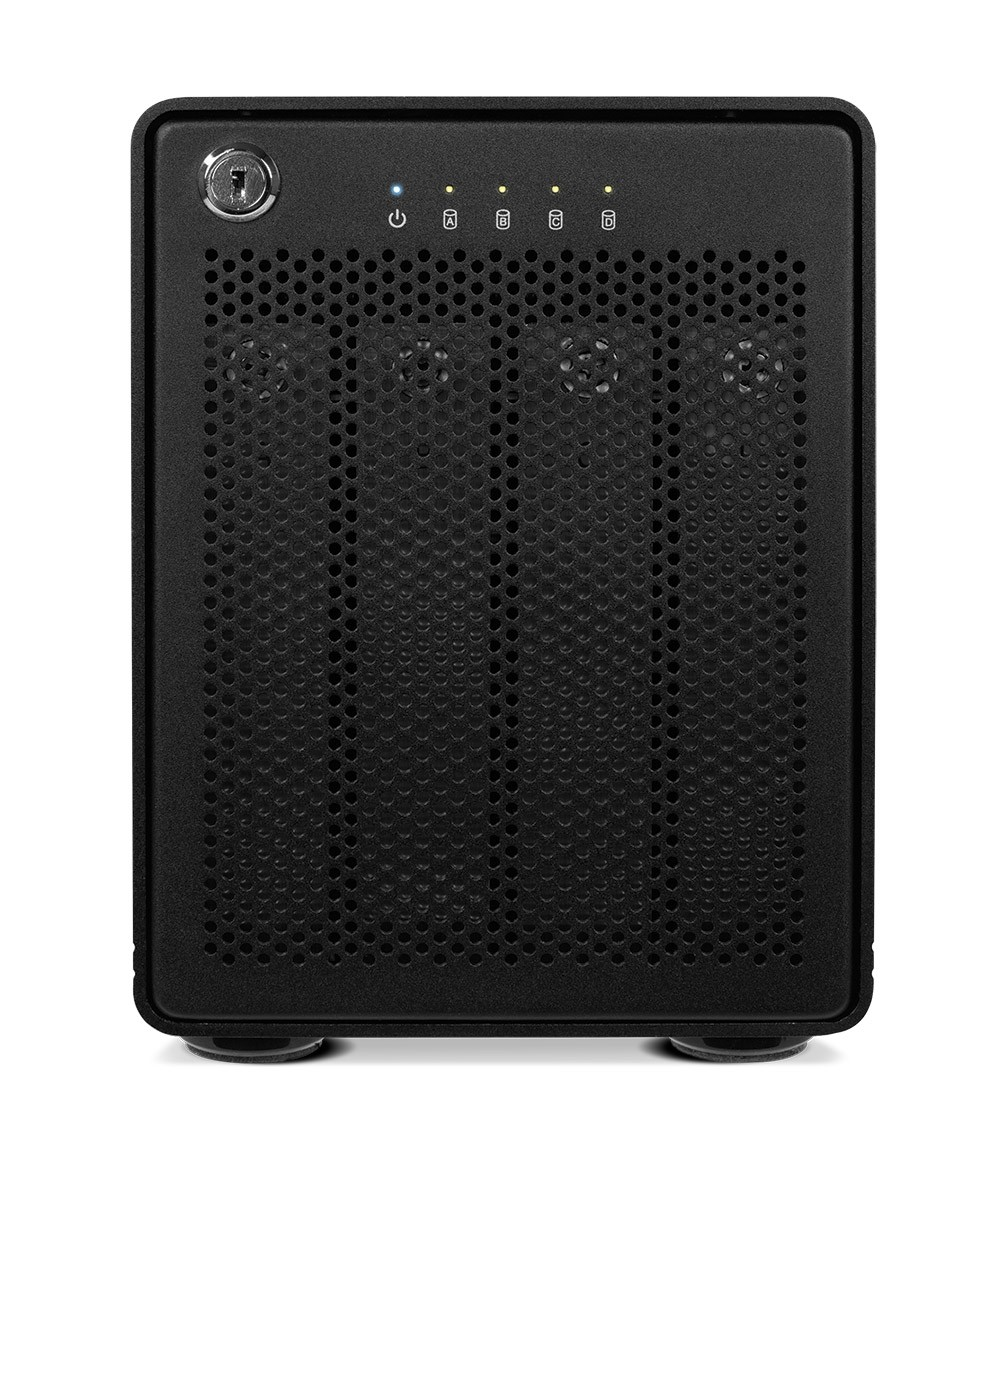 24TB OWC ThunderBay 4 RAID 5 4-Drive Enterprise HDD Storage Solution with Dual Thunderbolt 2 Ports, OWCTB2SRE24.0S